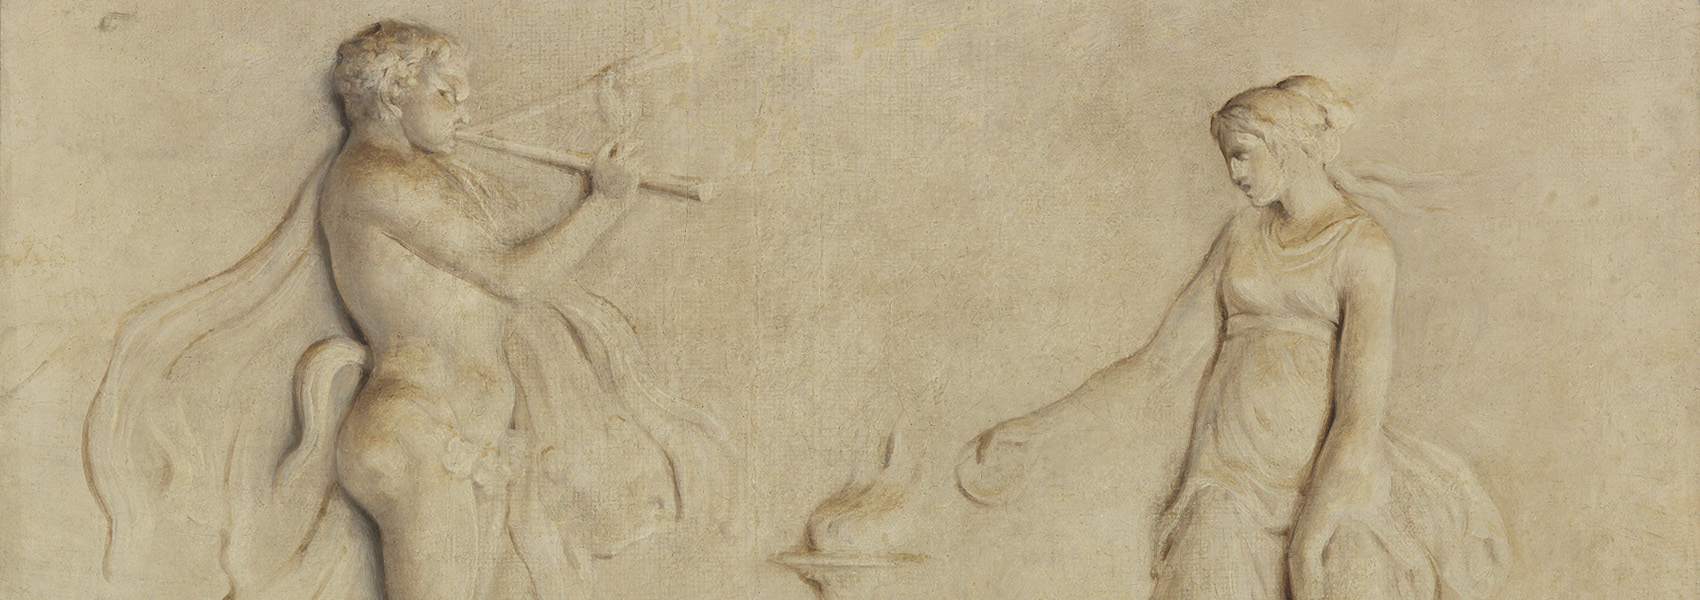 Tommaso Gherardini, Classical Relief (detail), 1765, Oil on canvas. Smart Museum of Art, Gift of the Collection of Edward A. and Inge Maser, 2008.23